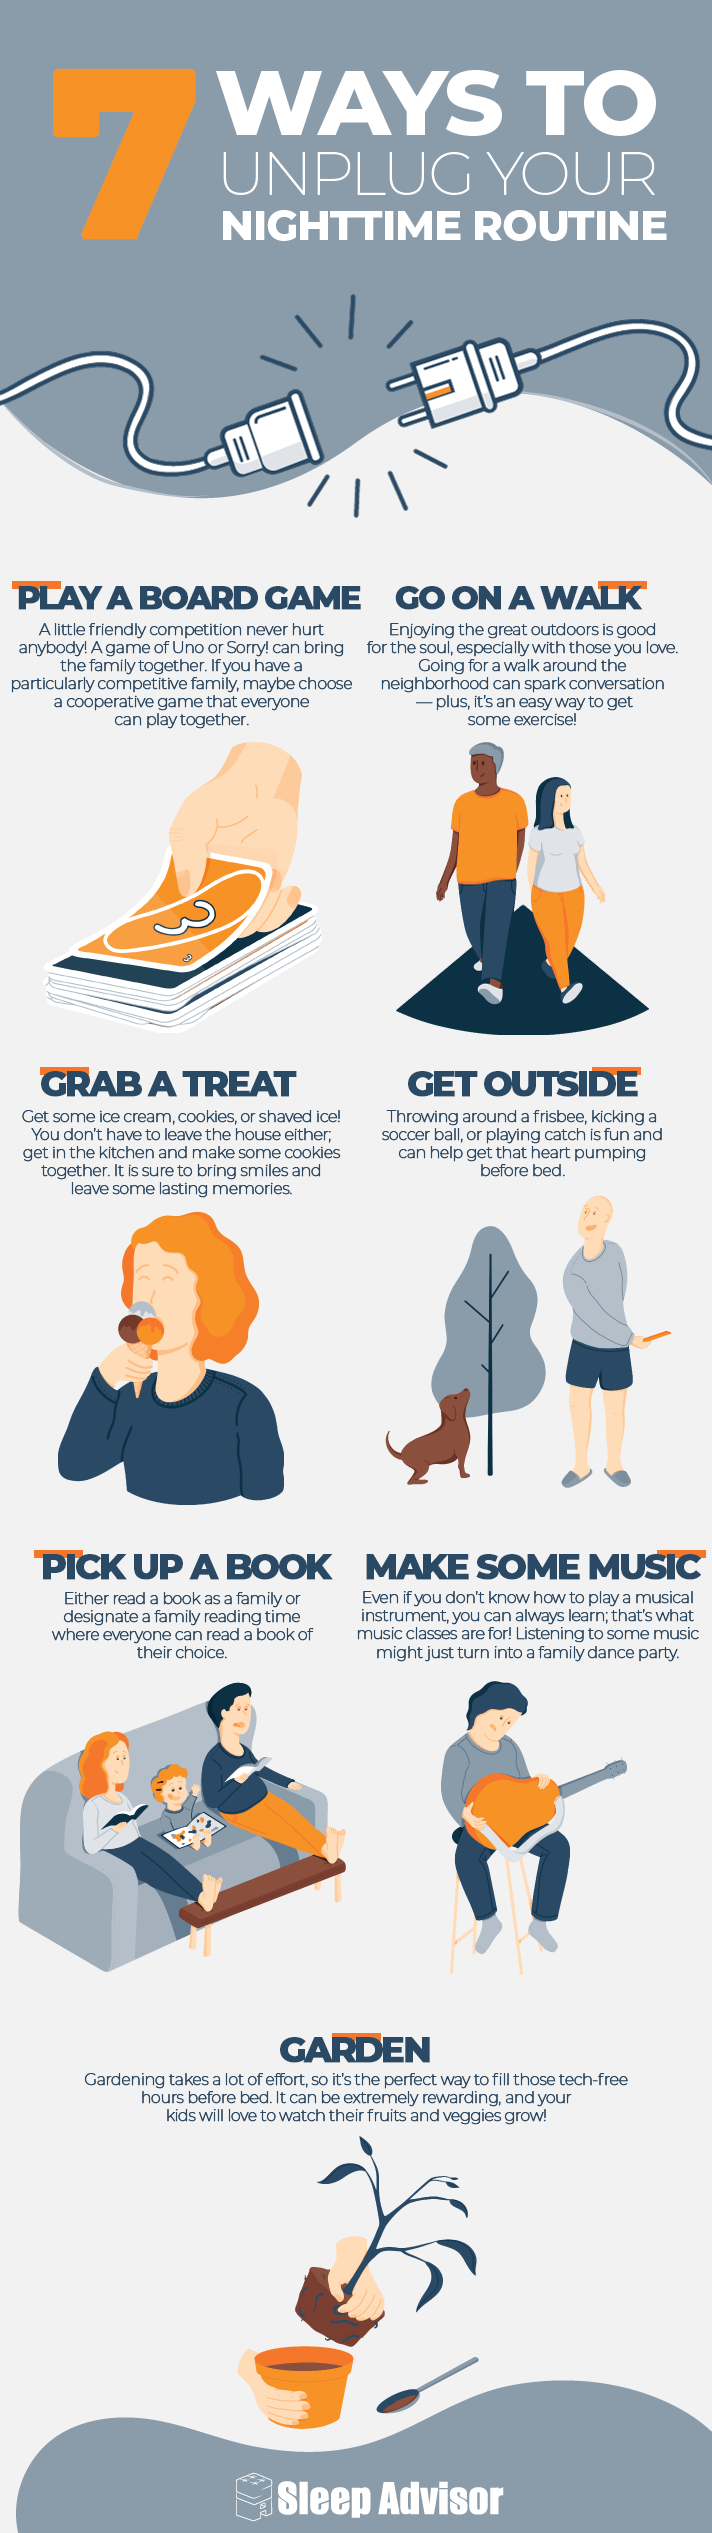 7 Ways To Unplug Your Nighttime Routine Infographic